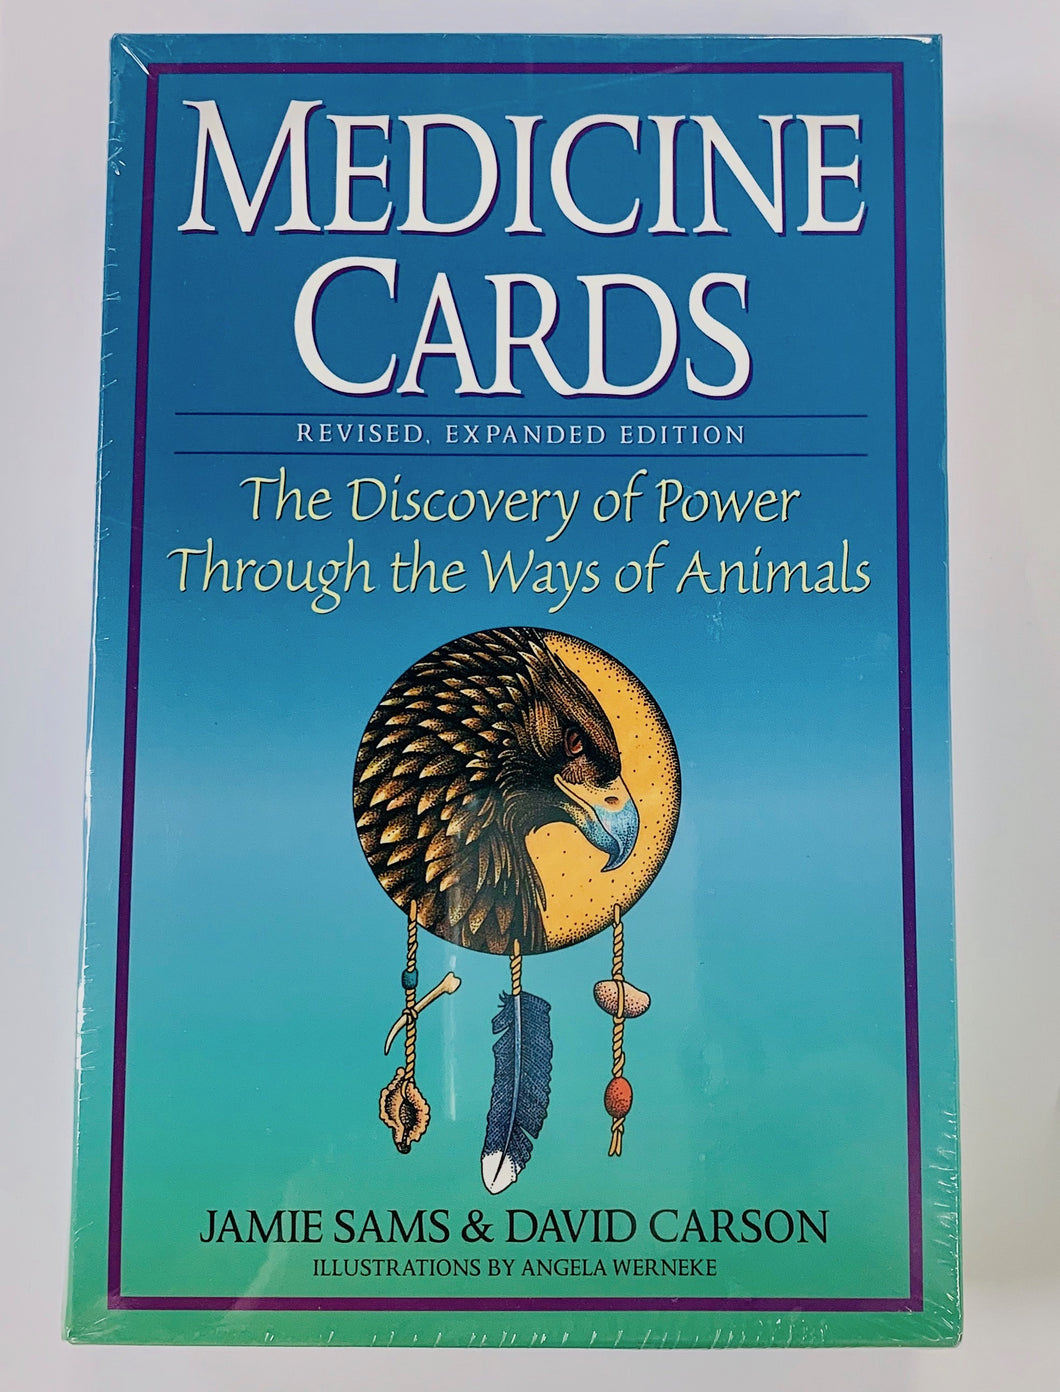 Medicine Cards by Jamie Sams and David Carson